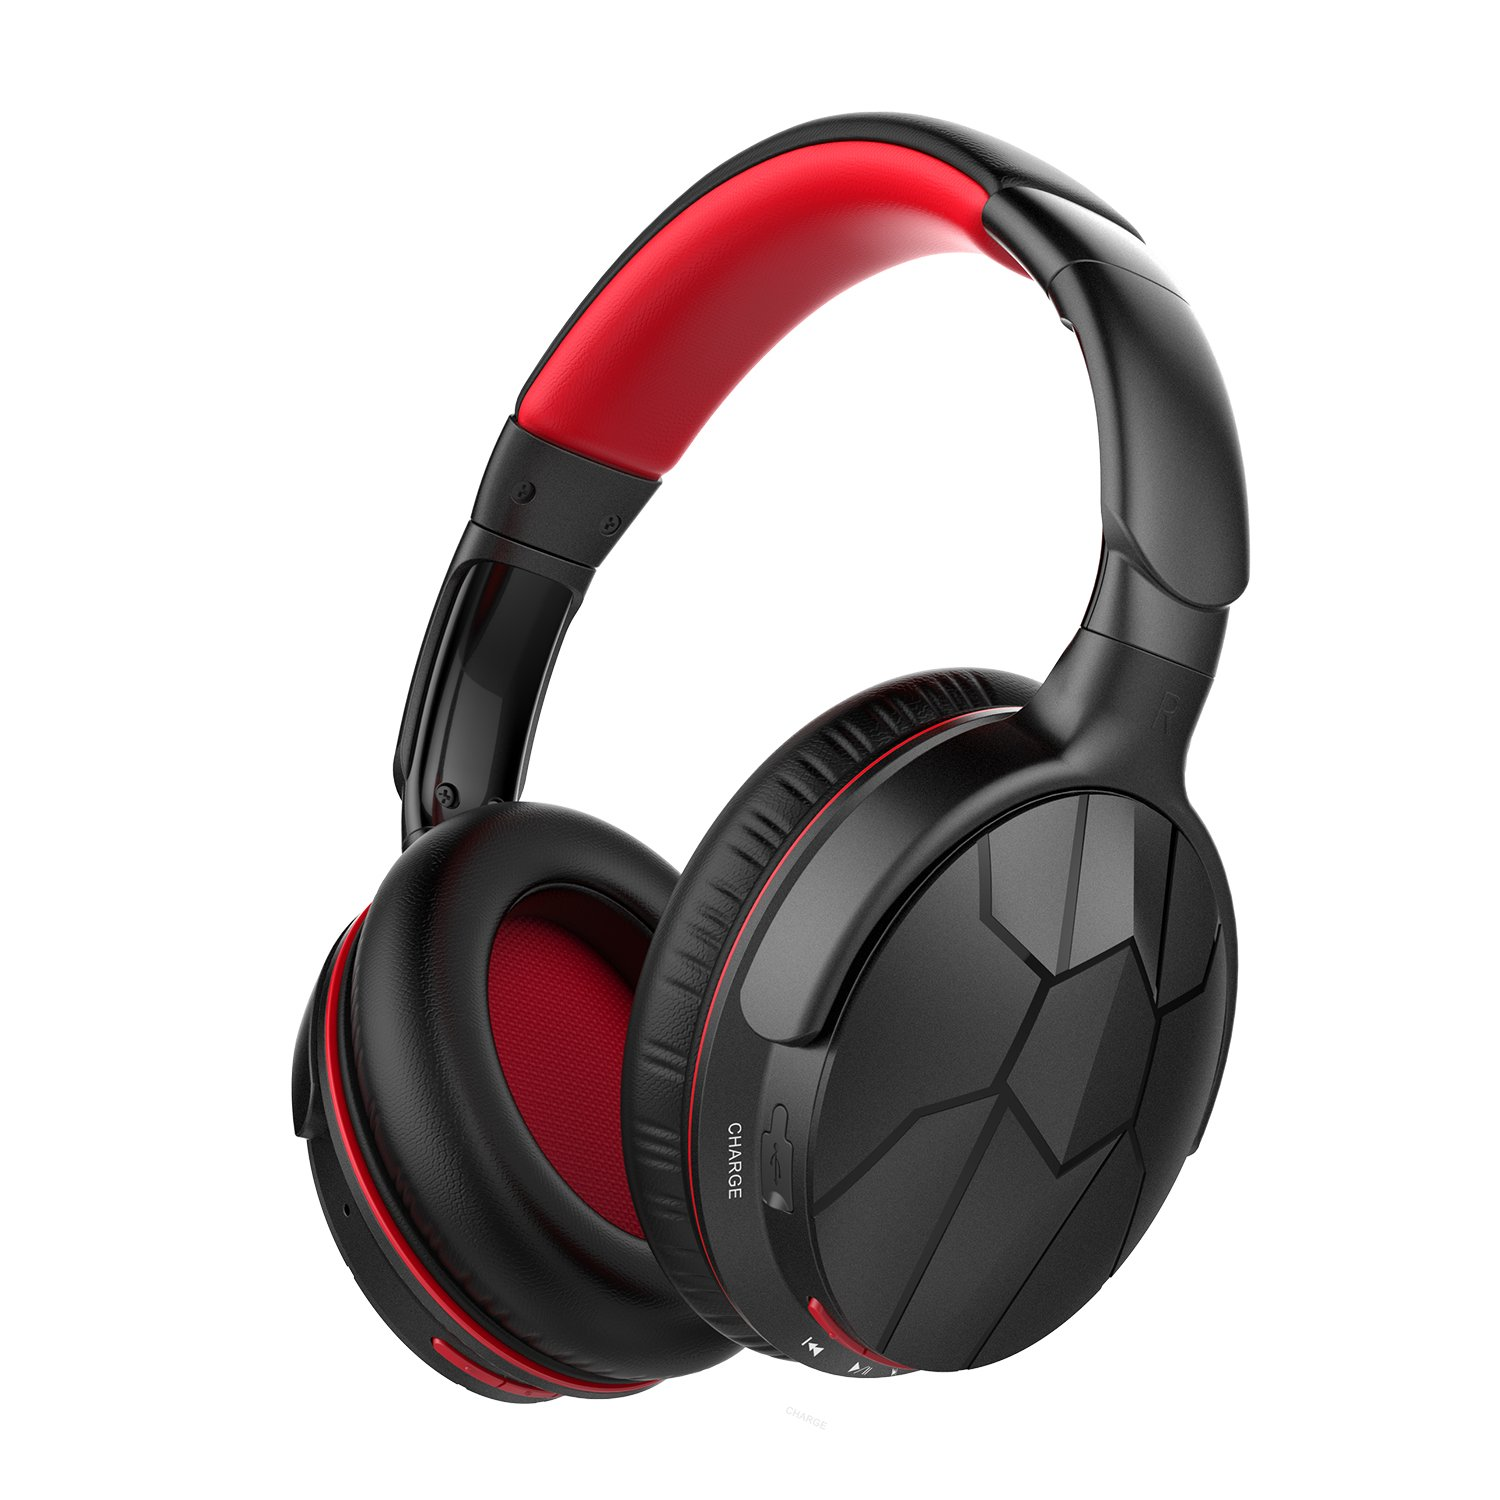 Mixcder HD501 Wireless Headphones, Bluetooth 4.0 Cordless Stereo Headsets with Mircophone, Over Ear, Lightweight, Soft Memory-Protein Earmuffs and Wired Mode for PC/TV/ Cell Phones